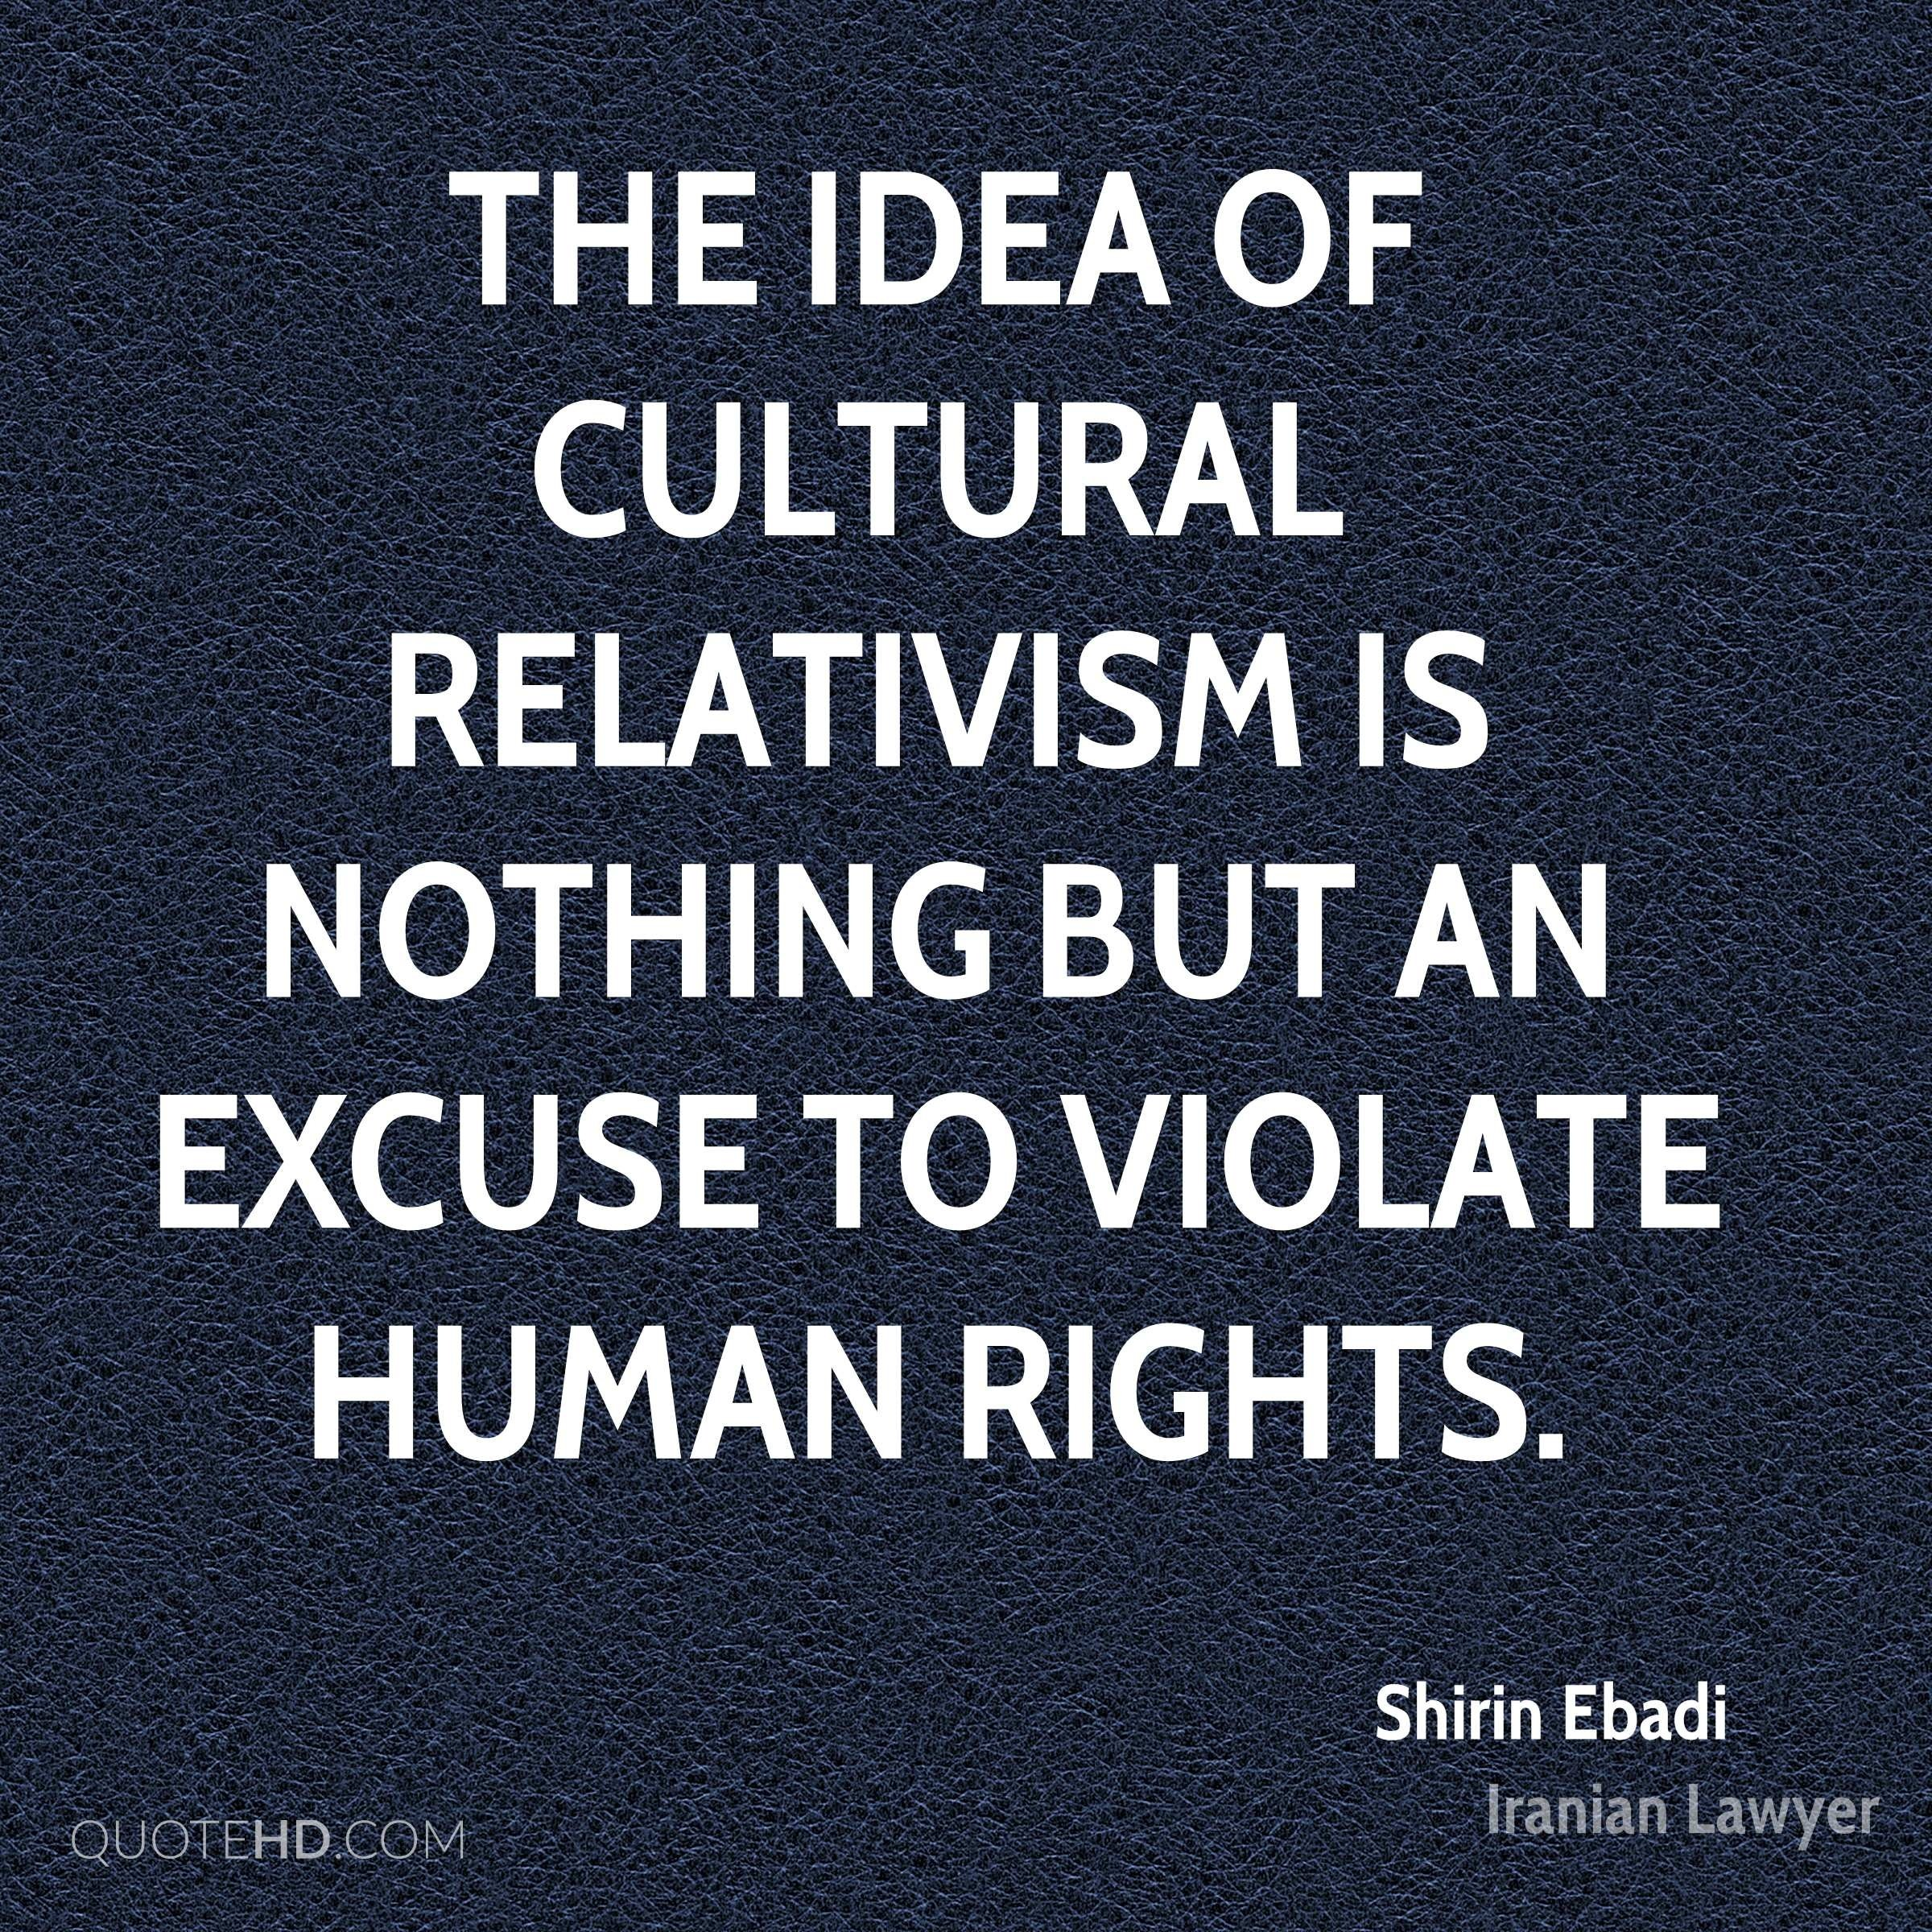 10 Fabulous Cultural Relativism Is The Idea That shirin ebadi quotes quotehd 2020